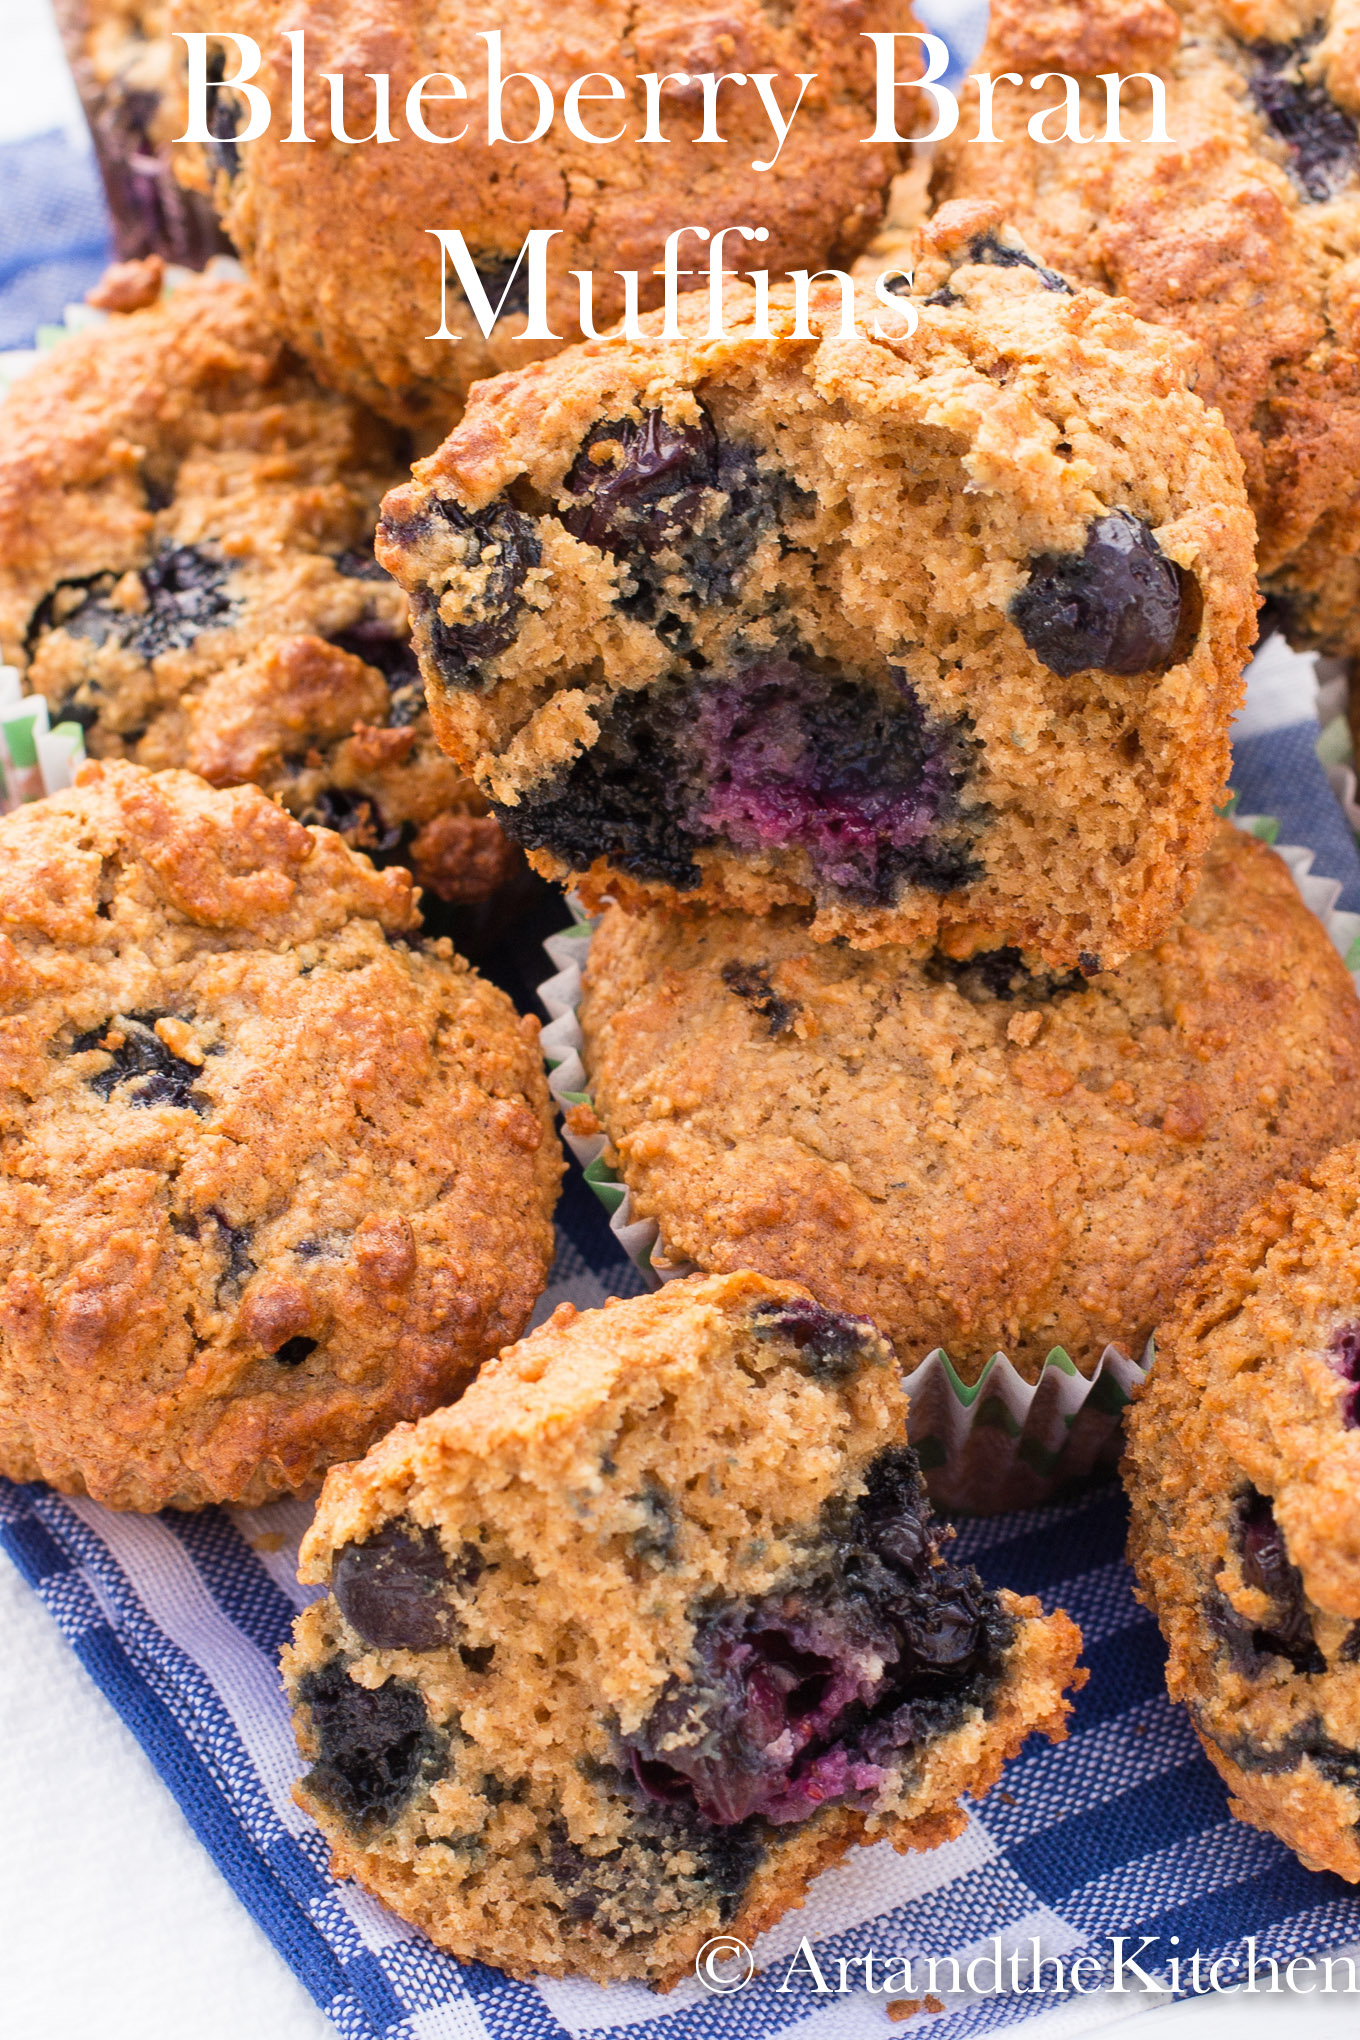 These healthy blueberry bran muffins are made with fresh blueberries, oat bran. A great source of fiber and perfect for breakfast on the go or a healthy snack.